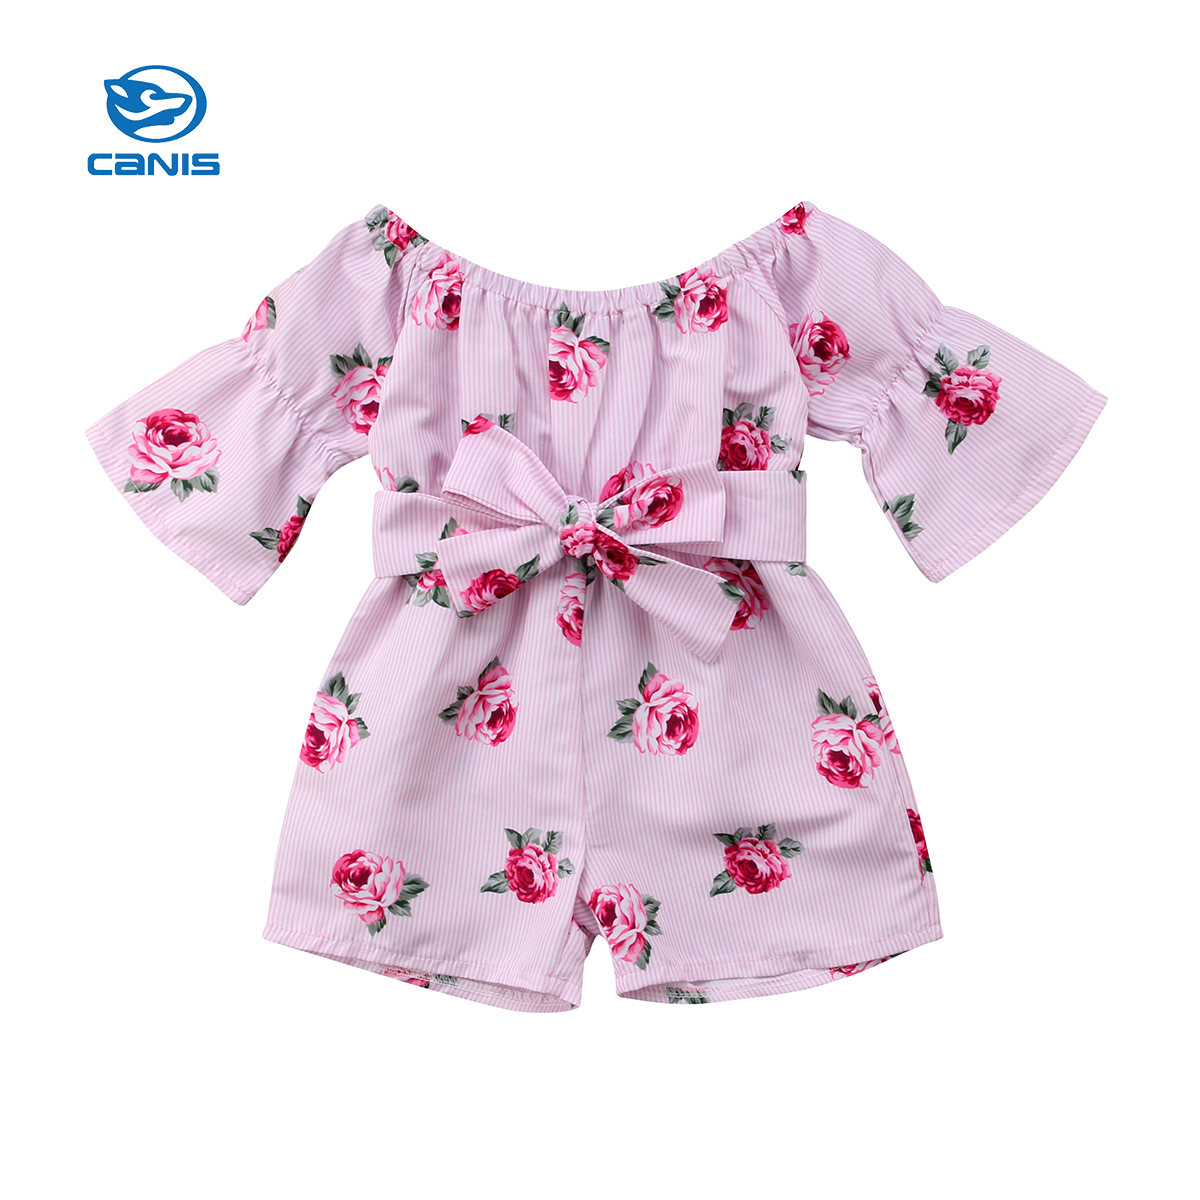 CANIS Toddler Girls Summer Clothing Princess Toddler Baby Girl Romper Floral Off Shoulder Romper Sunsuit Children Clothing ...